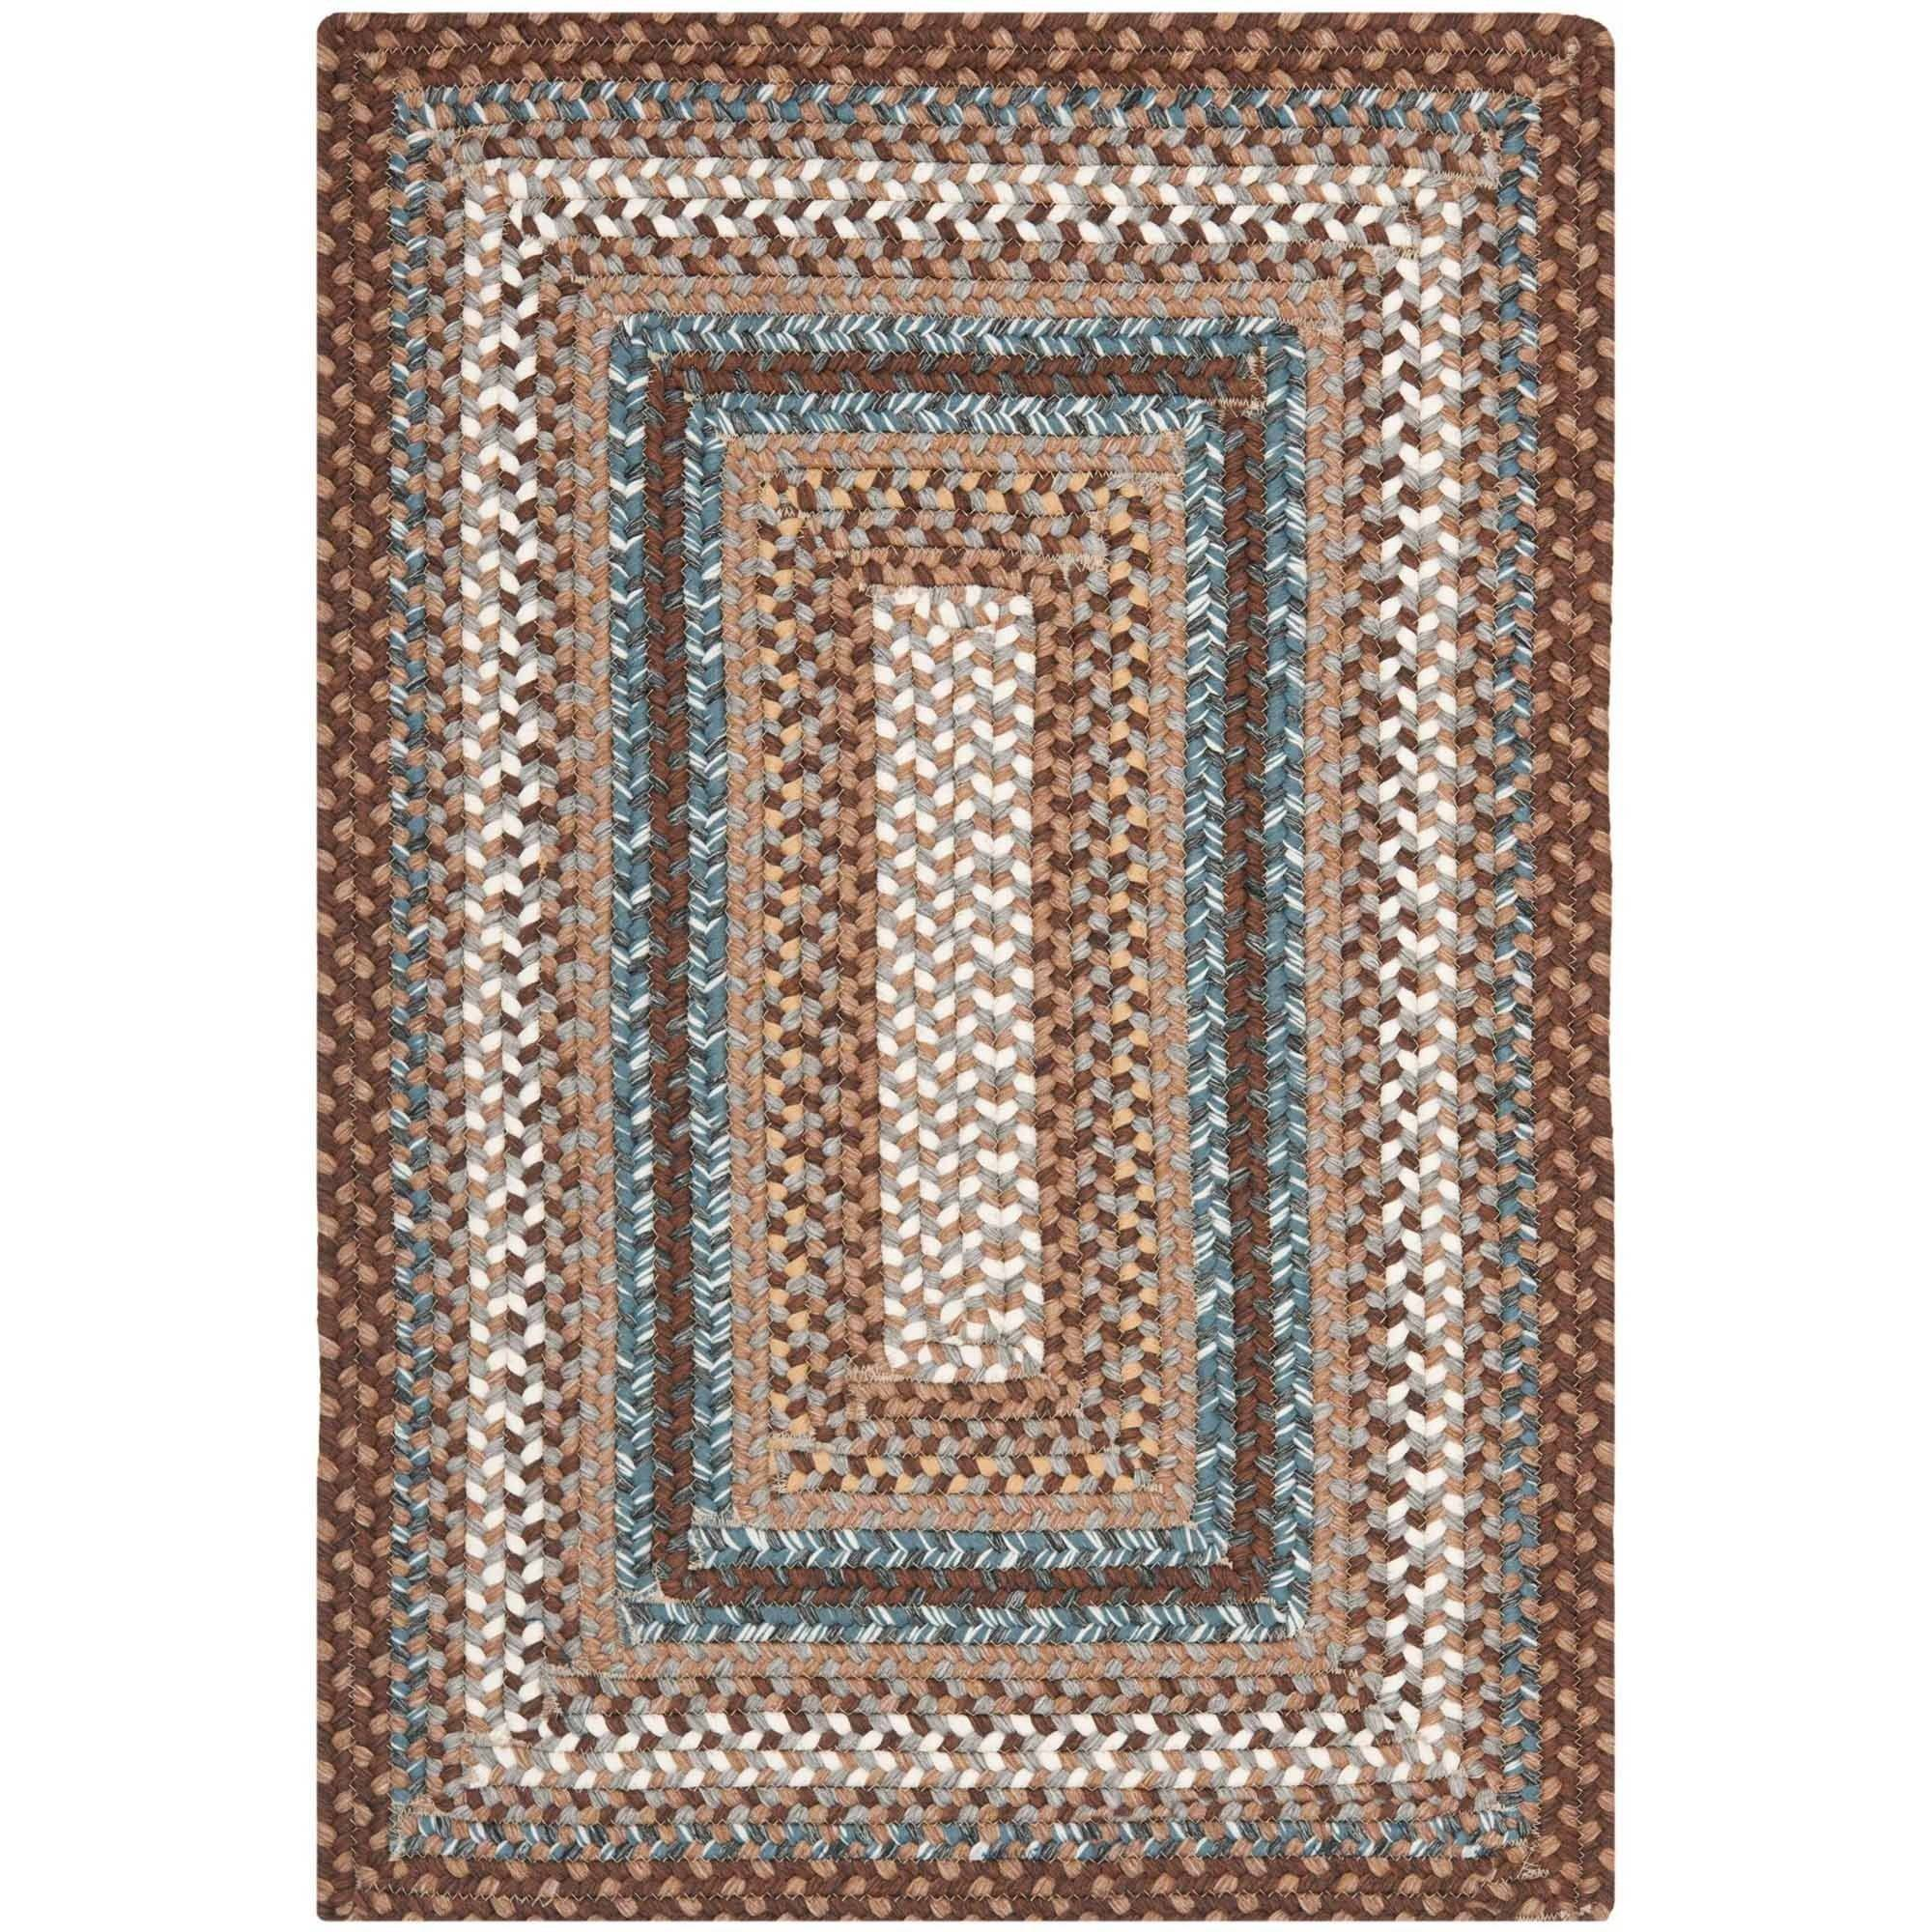 Safavieh Braided Cady Polypropylene Area Rug, Brown/Multi